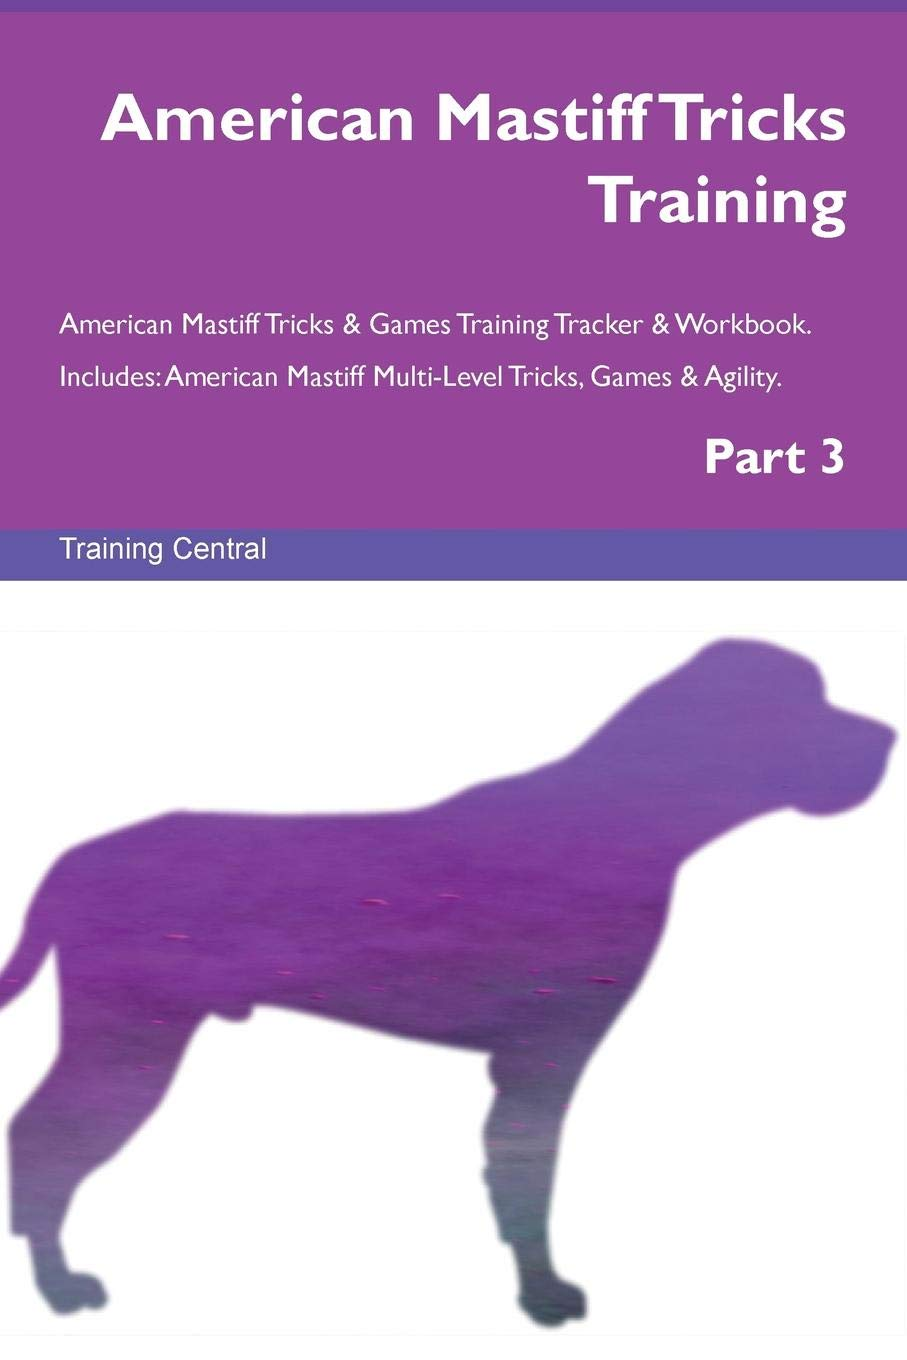 American Mastiff Tricks Training American Mastiff Tricks & Games Training Tracker & Workbook.  Includes: American Mastiff Multi-Level Tricks, Games & Agility. Part 3 pdf